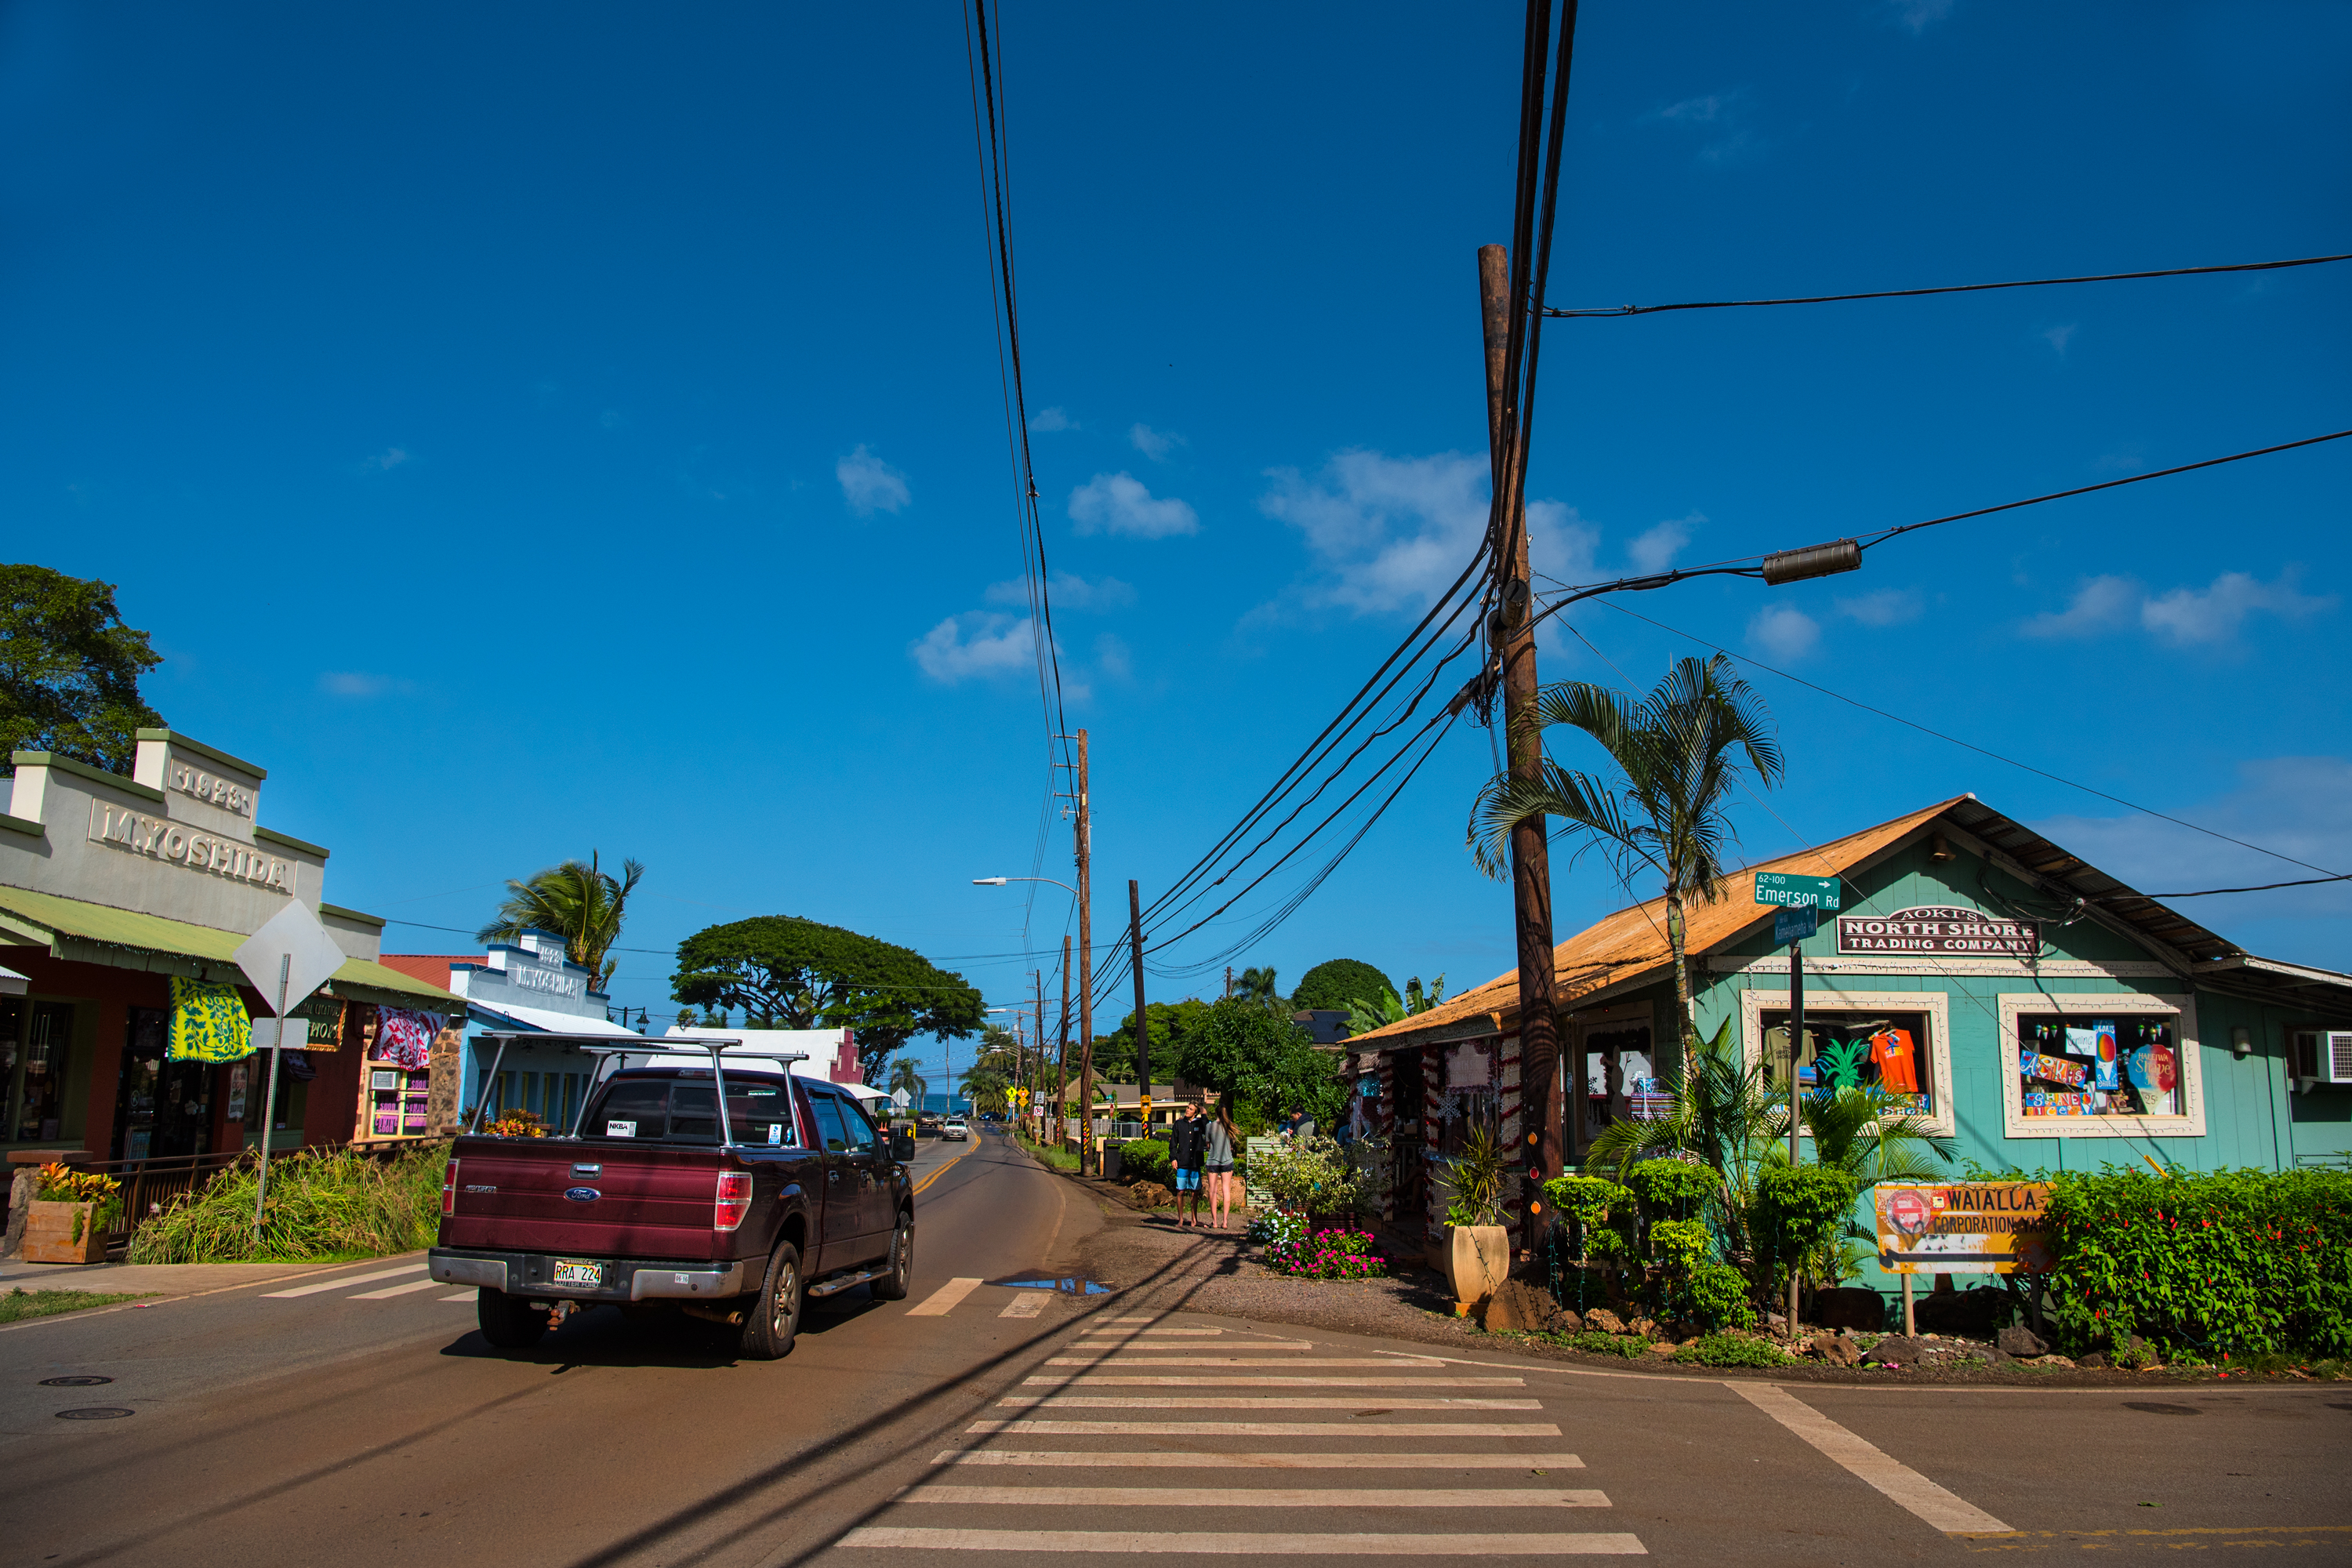 Scene of Haleiwa